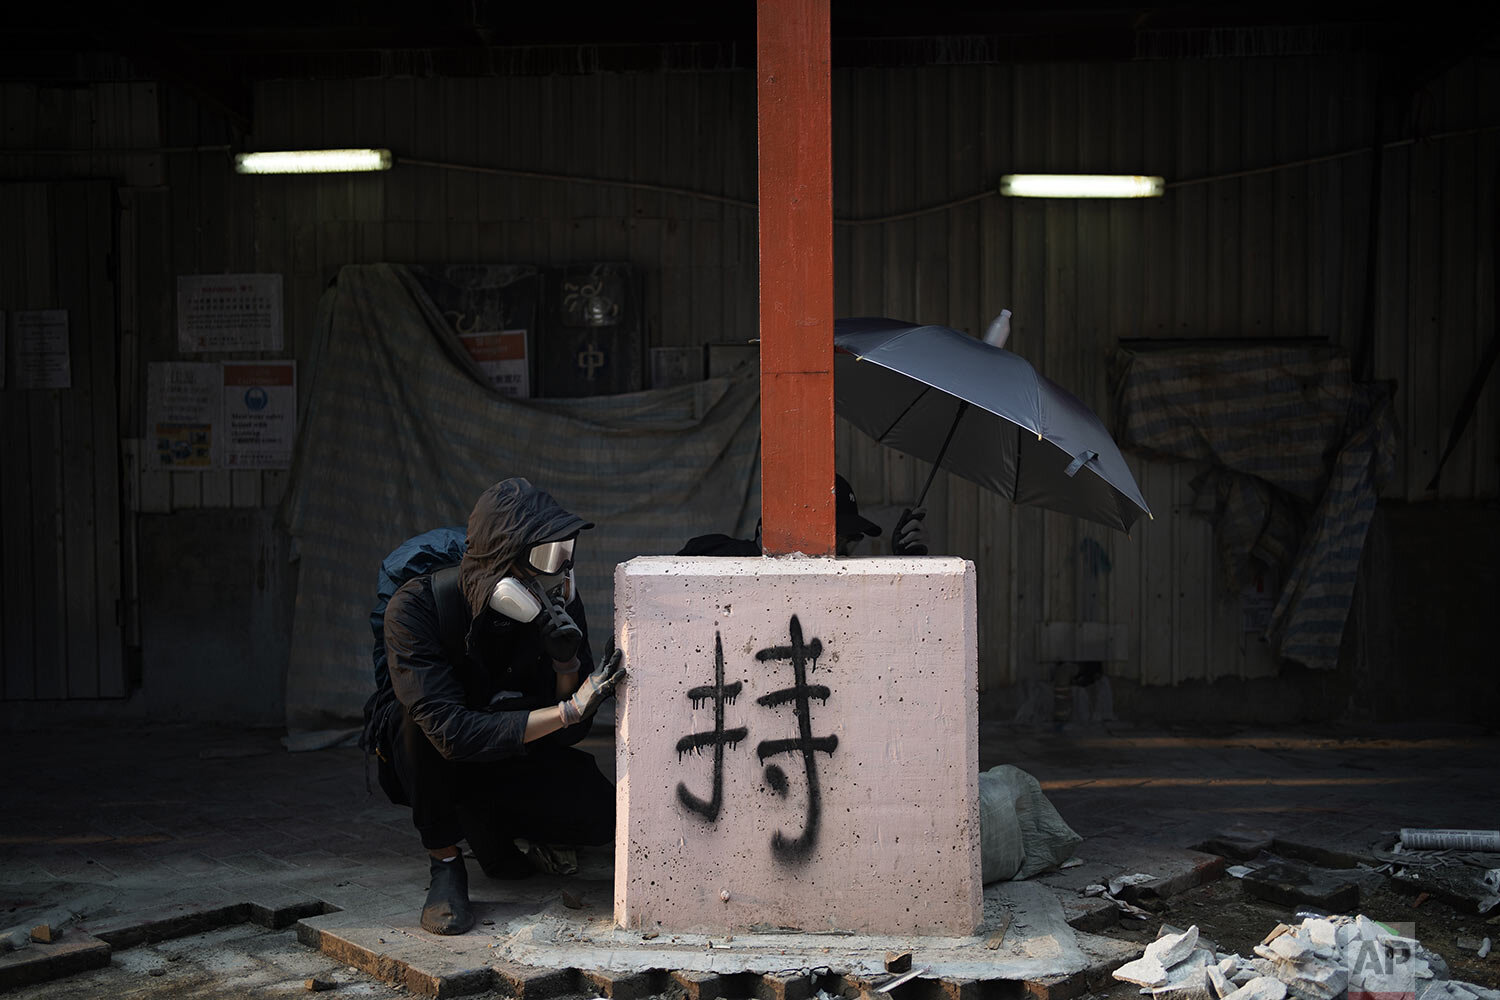 Protesters take position during a confrontation with police in Hong Kong, Sunday, Oct. 20, 2019. Hong Kong protesters again flooded streets on Sunday, ignoring a police ban on the rally and setting up barricades amid tear gas and firebombs. (AP Photo//Felipe Dana)